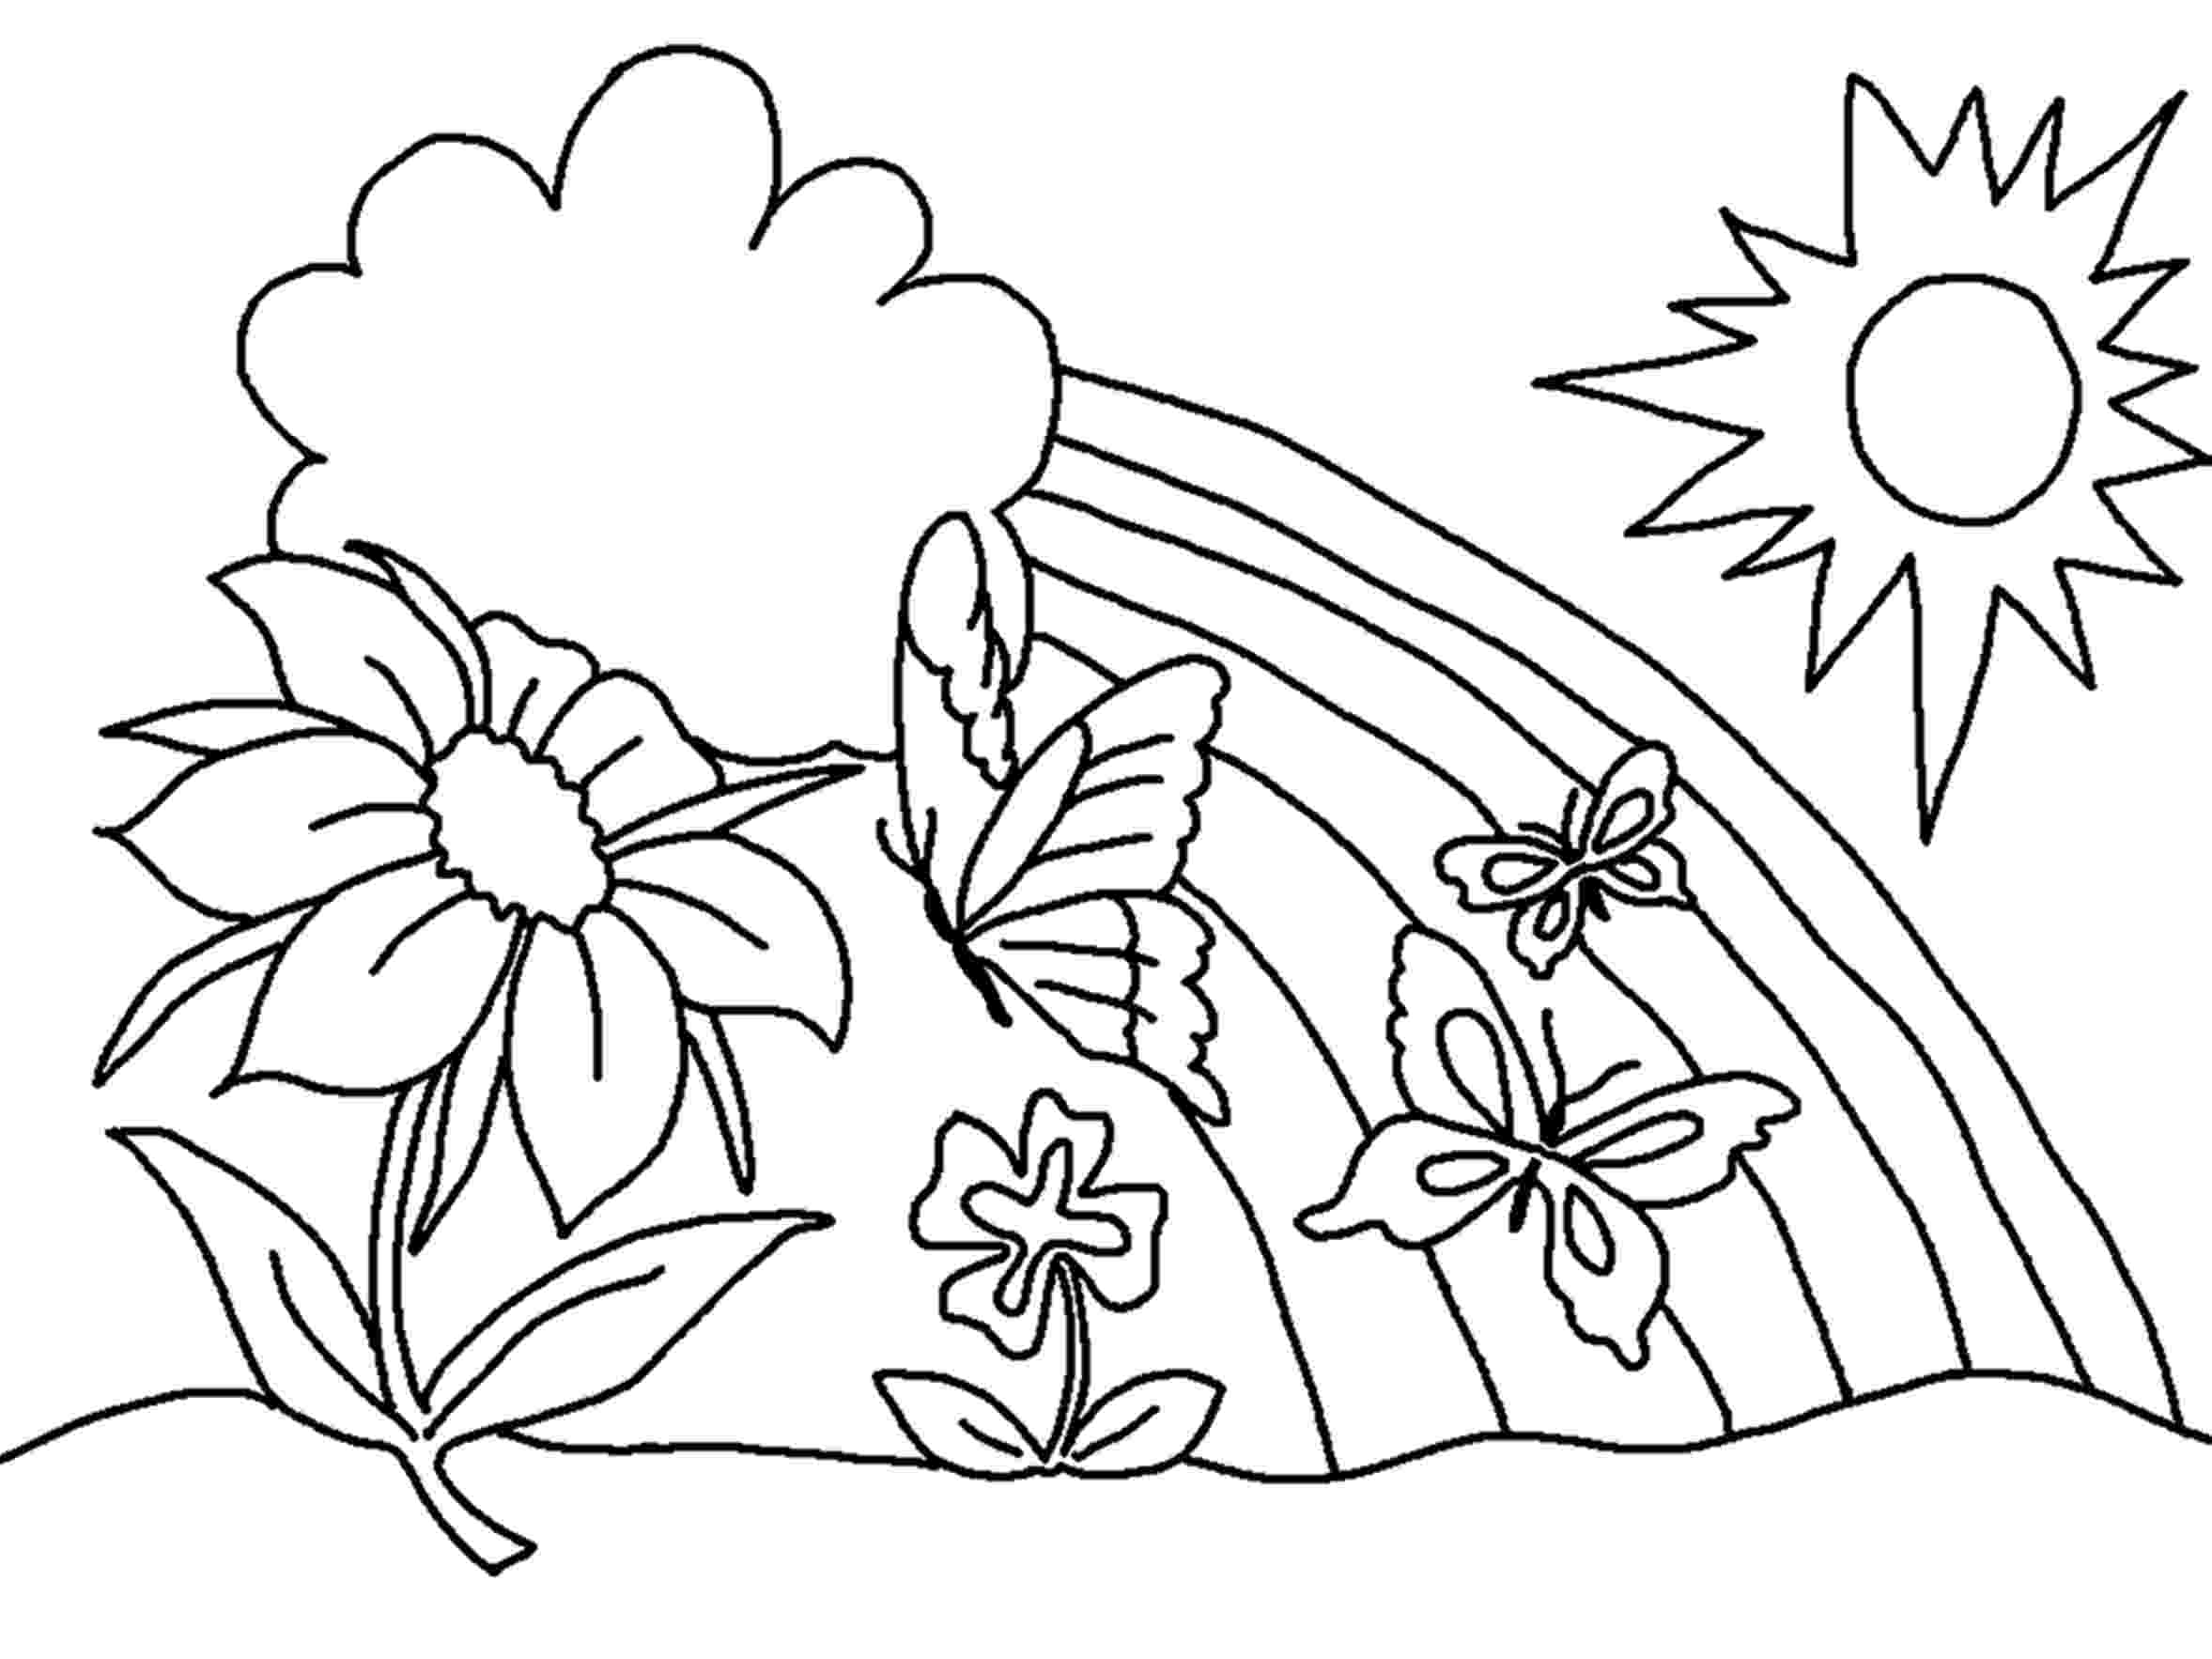 pictures of flowers to color free printables flowers free printable templates coloring pages printables of pictures to flowers color free